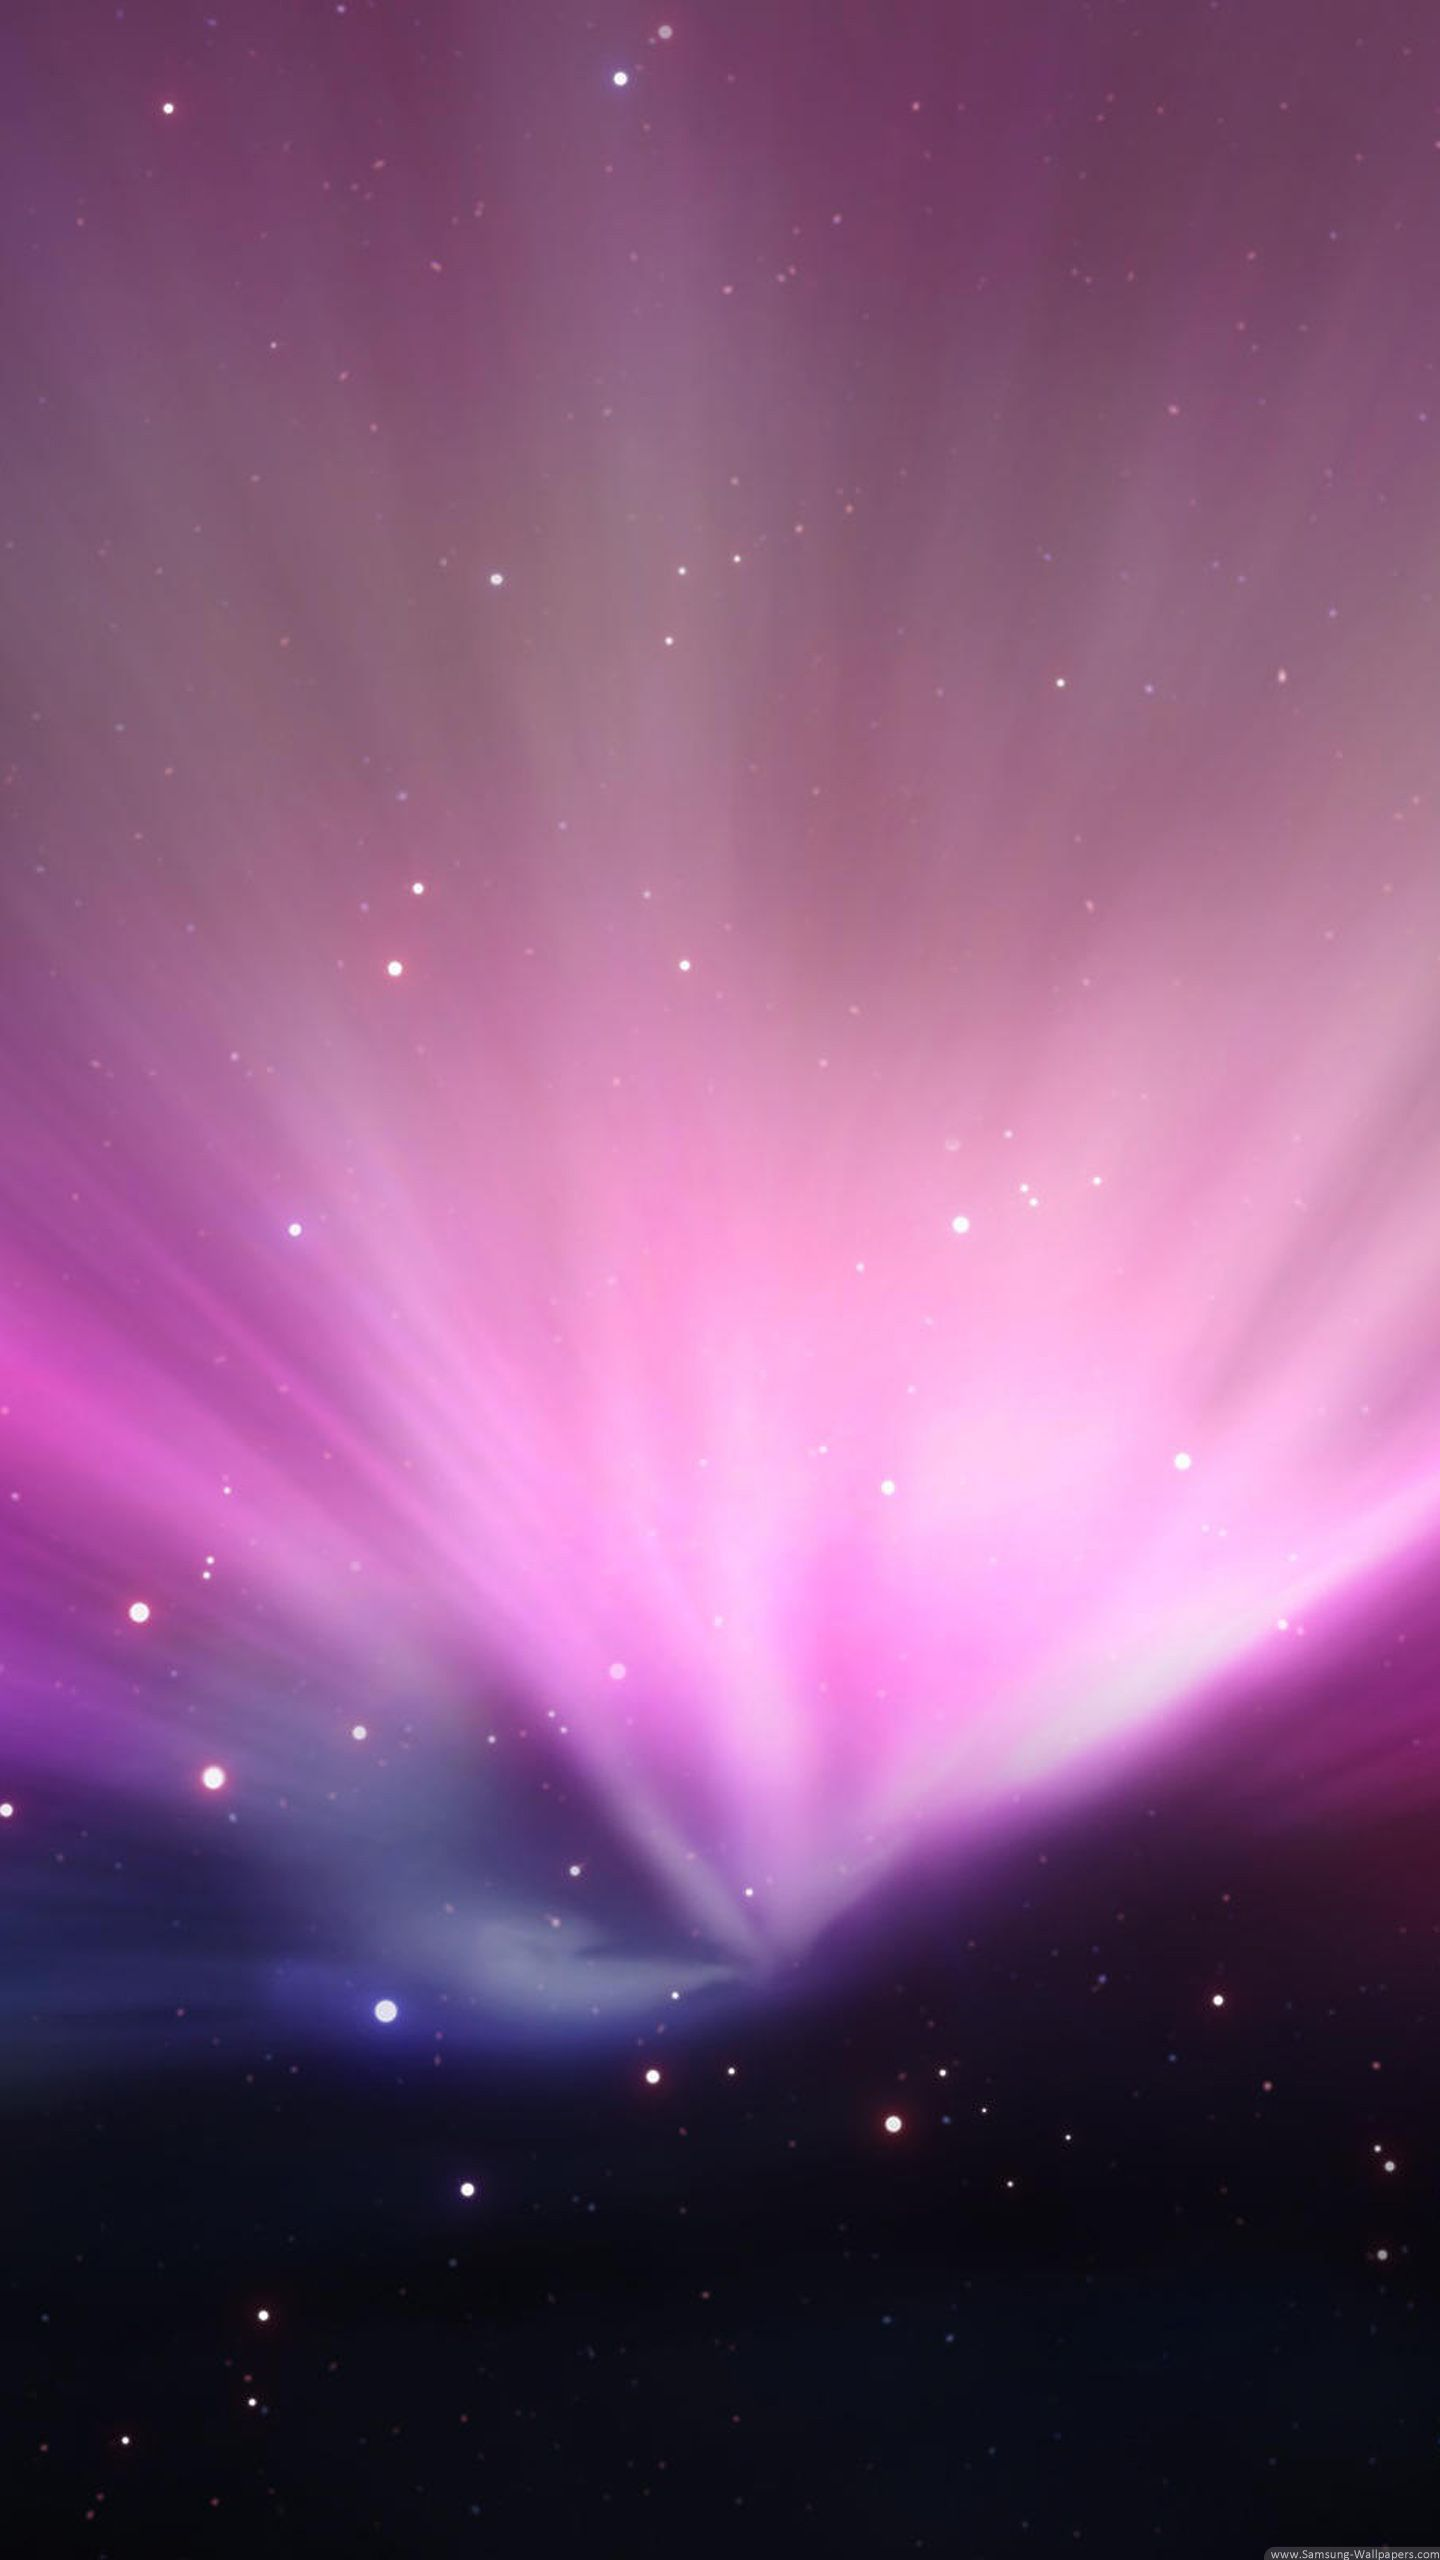 Tumblr iphone wallpaper purple - Explore Pink Light Iphone Wallpapers And More